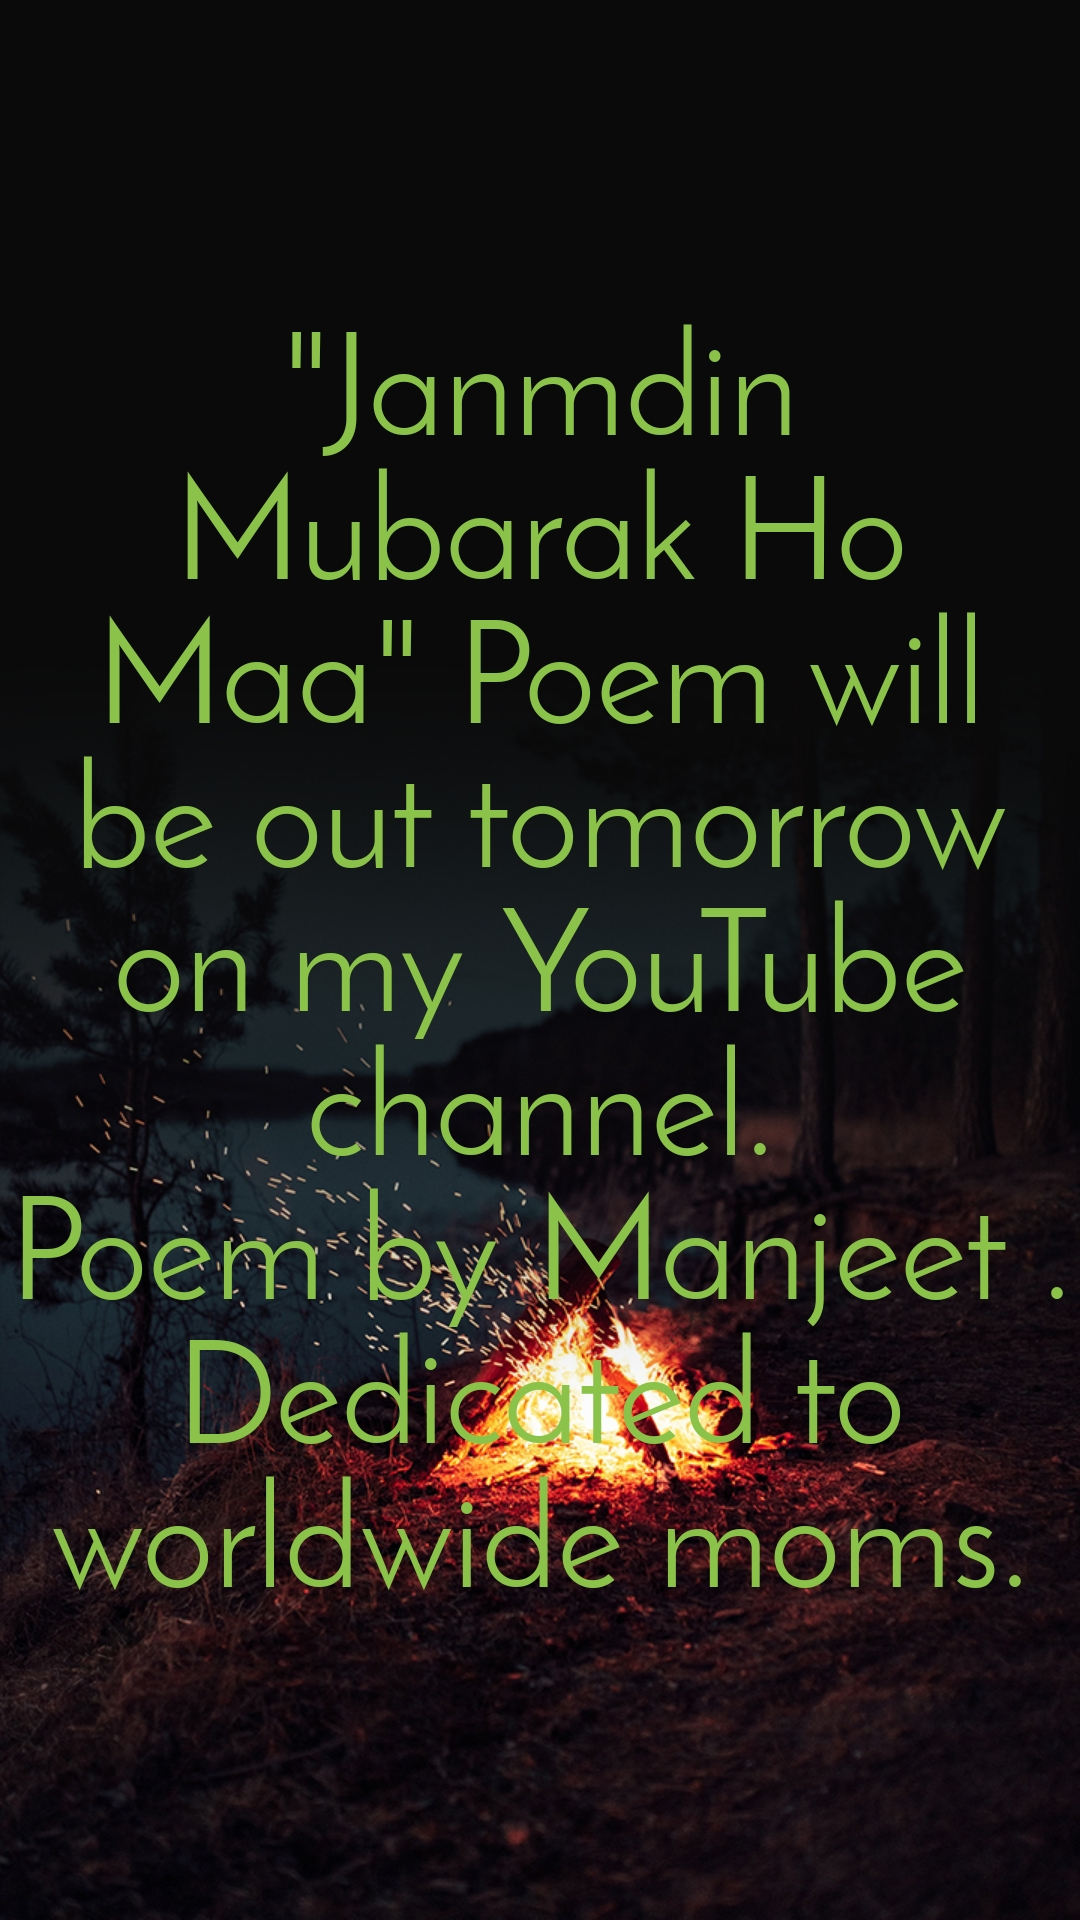 """""""Janmdin Mubarak Ho Maa"""" Poem will be out tomorrow on my YouTube channel. Poem by Manjeet . Dedicated to worldwide moms."""